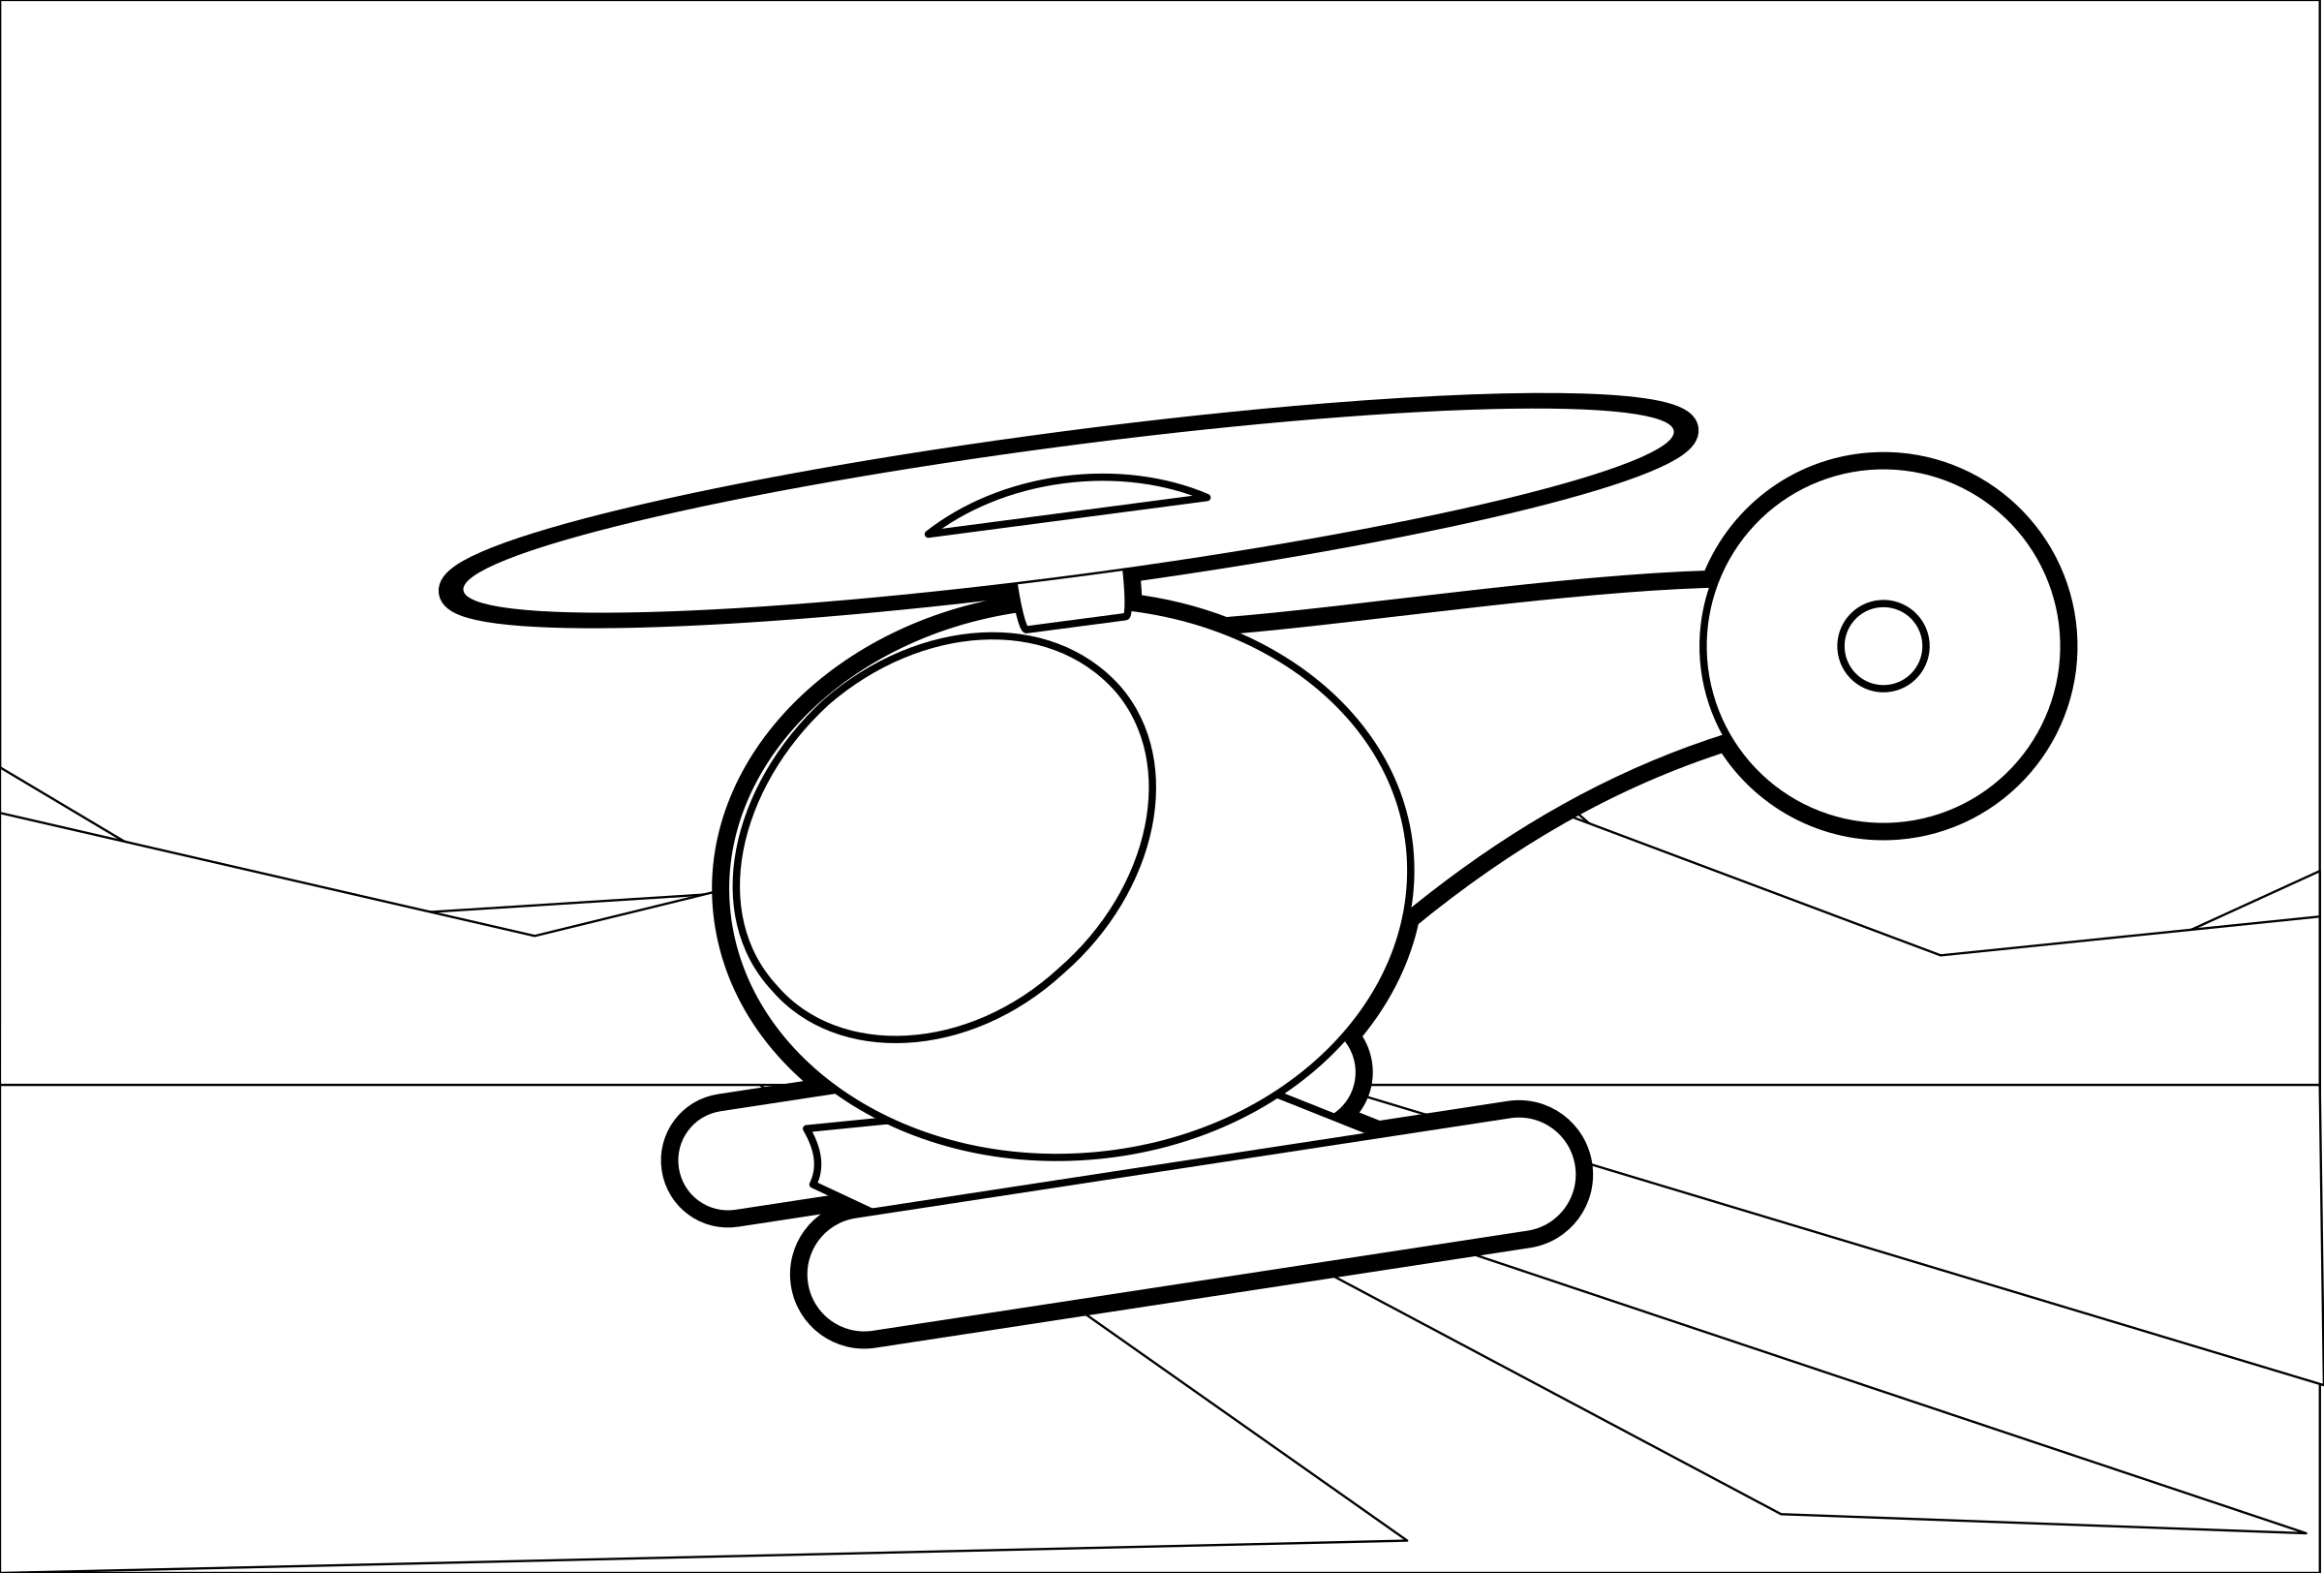 Helicopter Coloring Pages Coloring Books Helicopter [ 1624 x 2400 Pixel ]